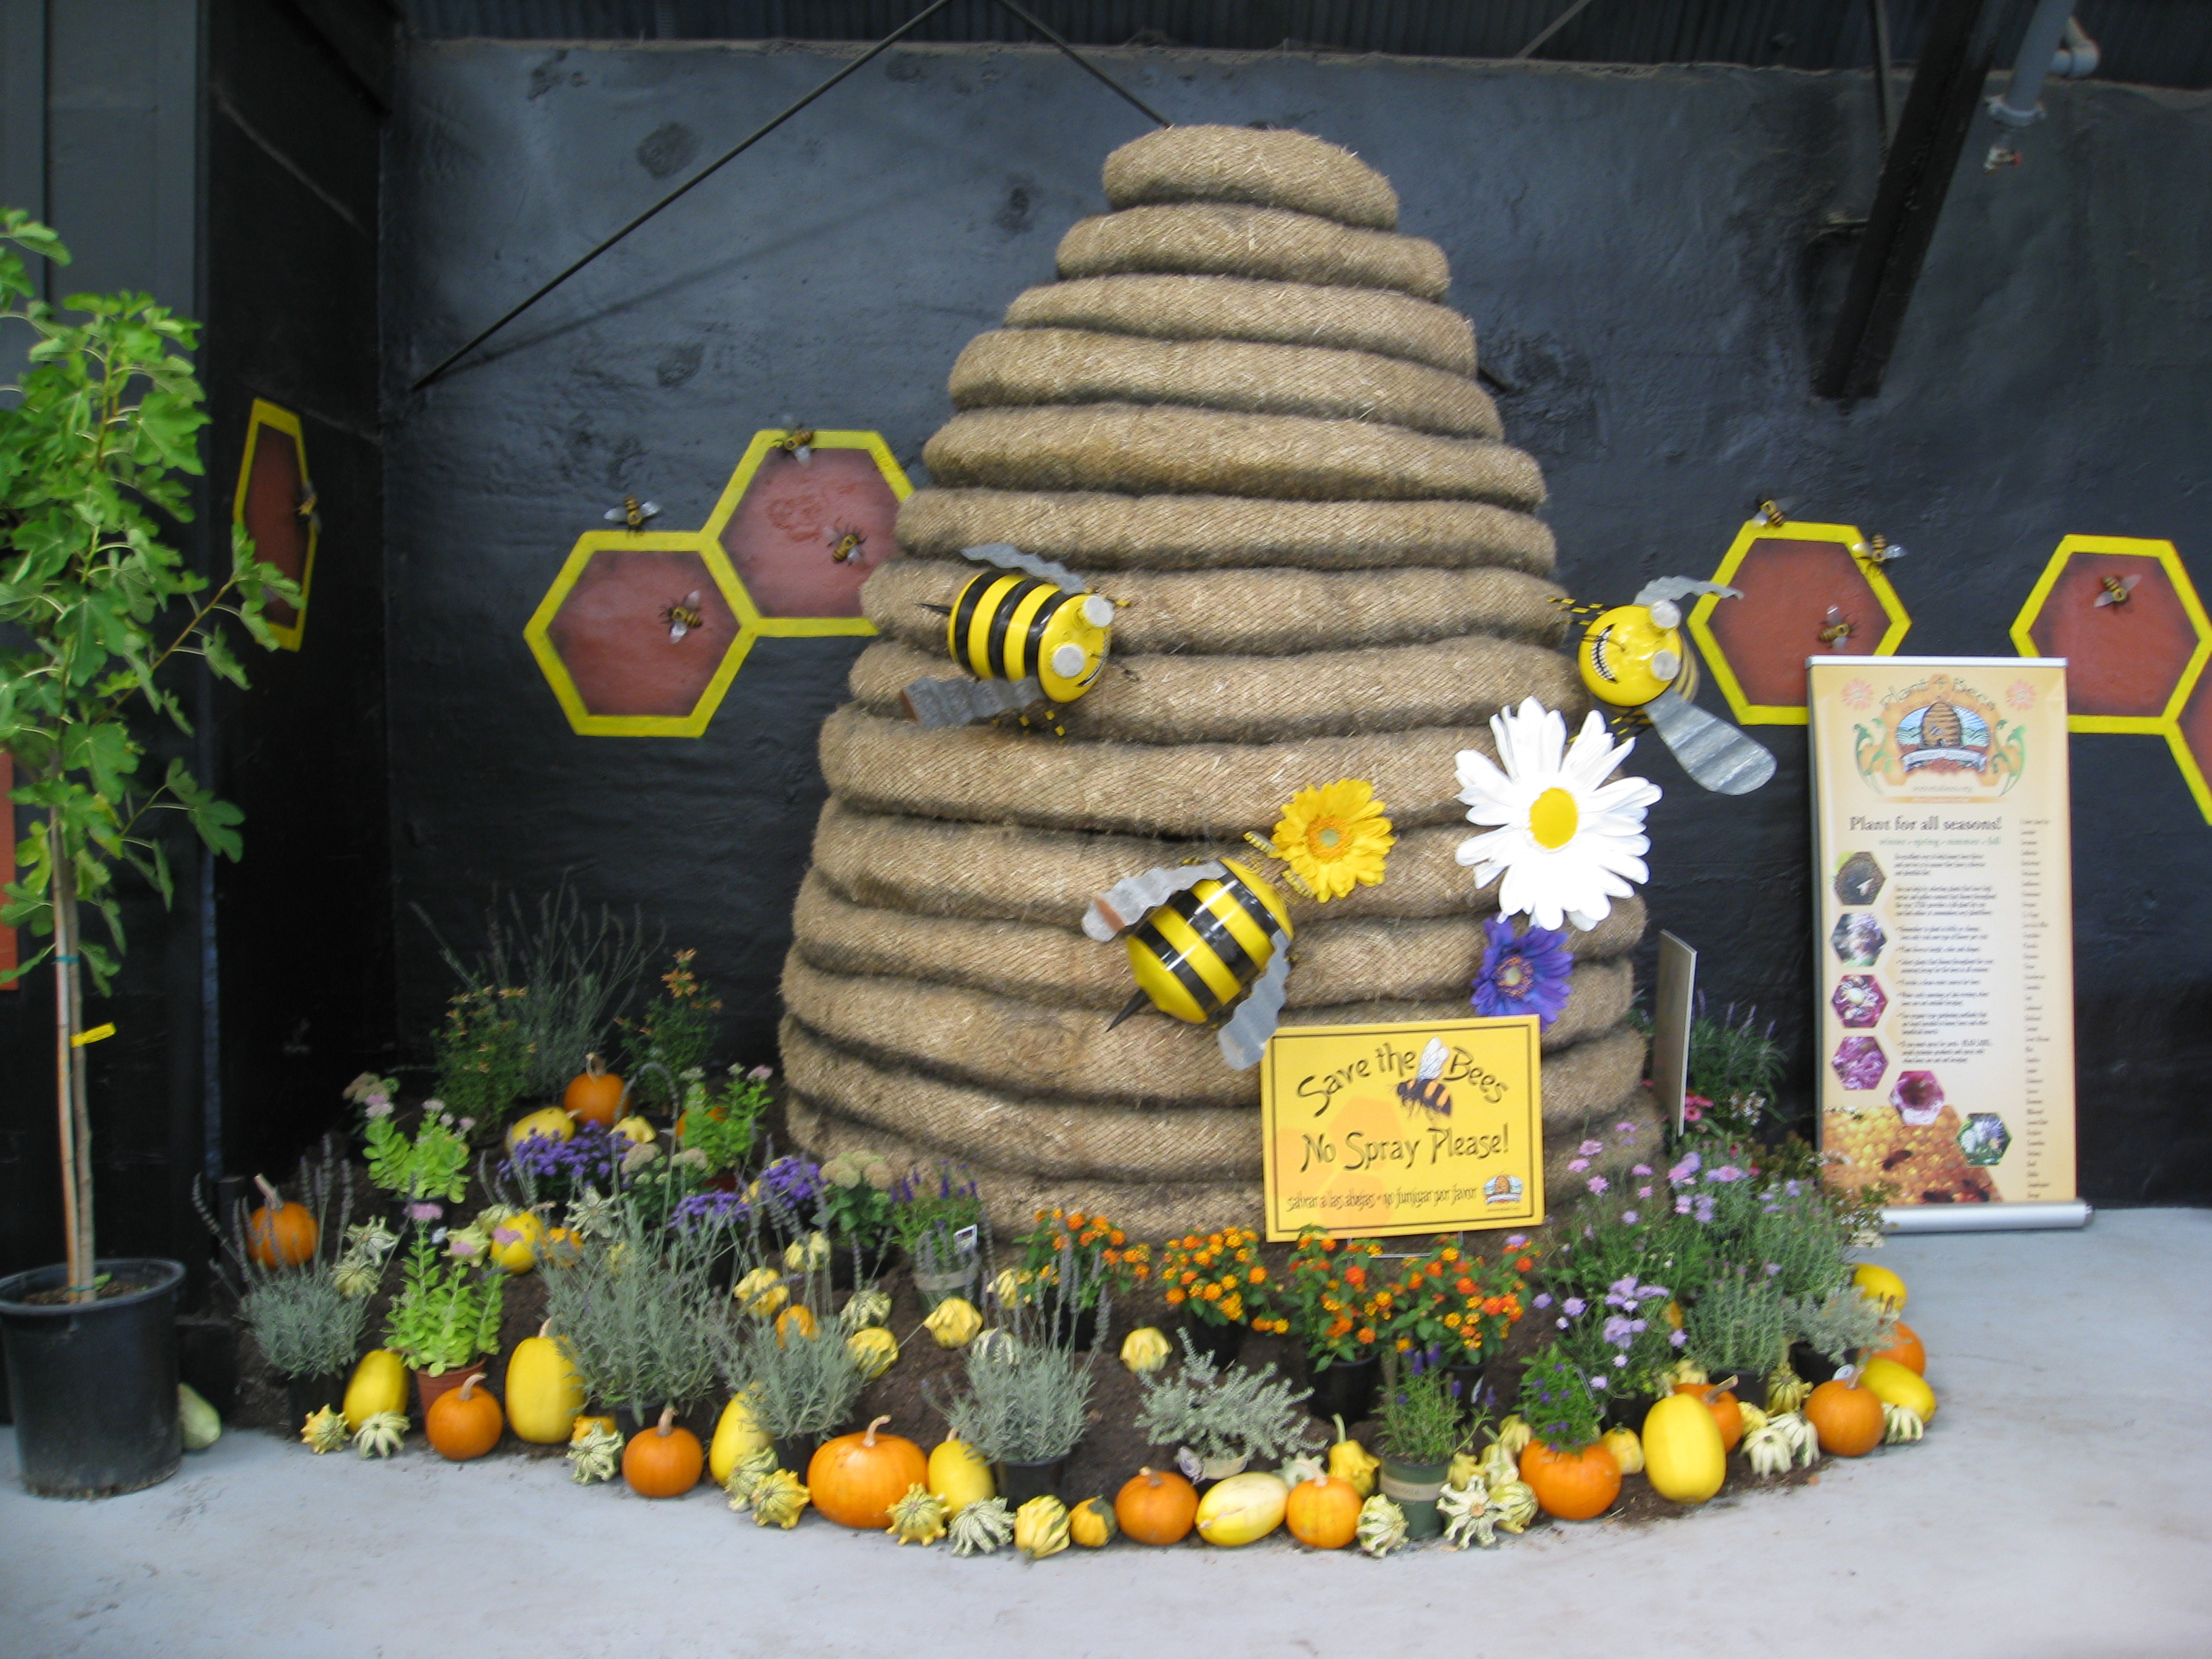 Save the bees! No sprays, please.